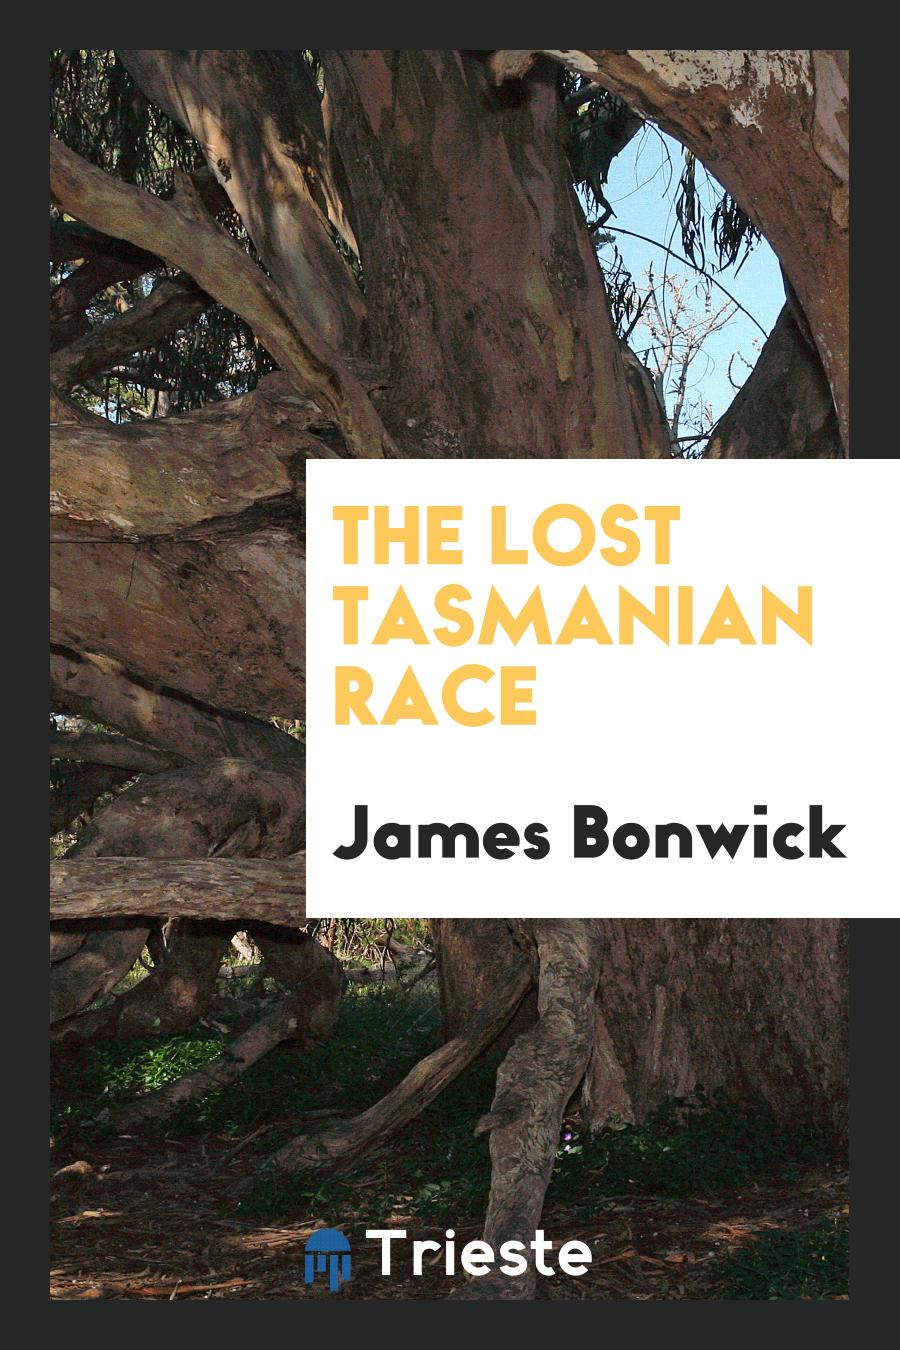 The Lost Tasmanian Race